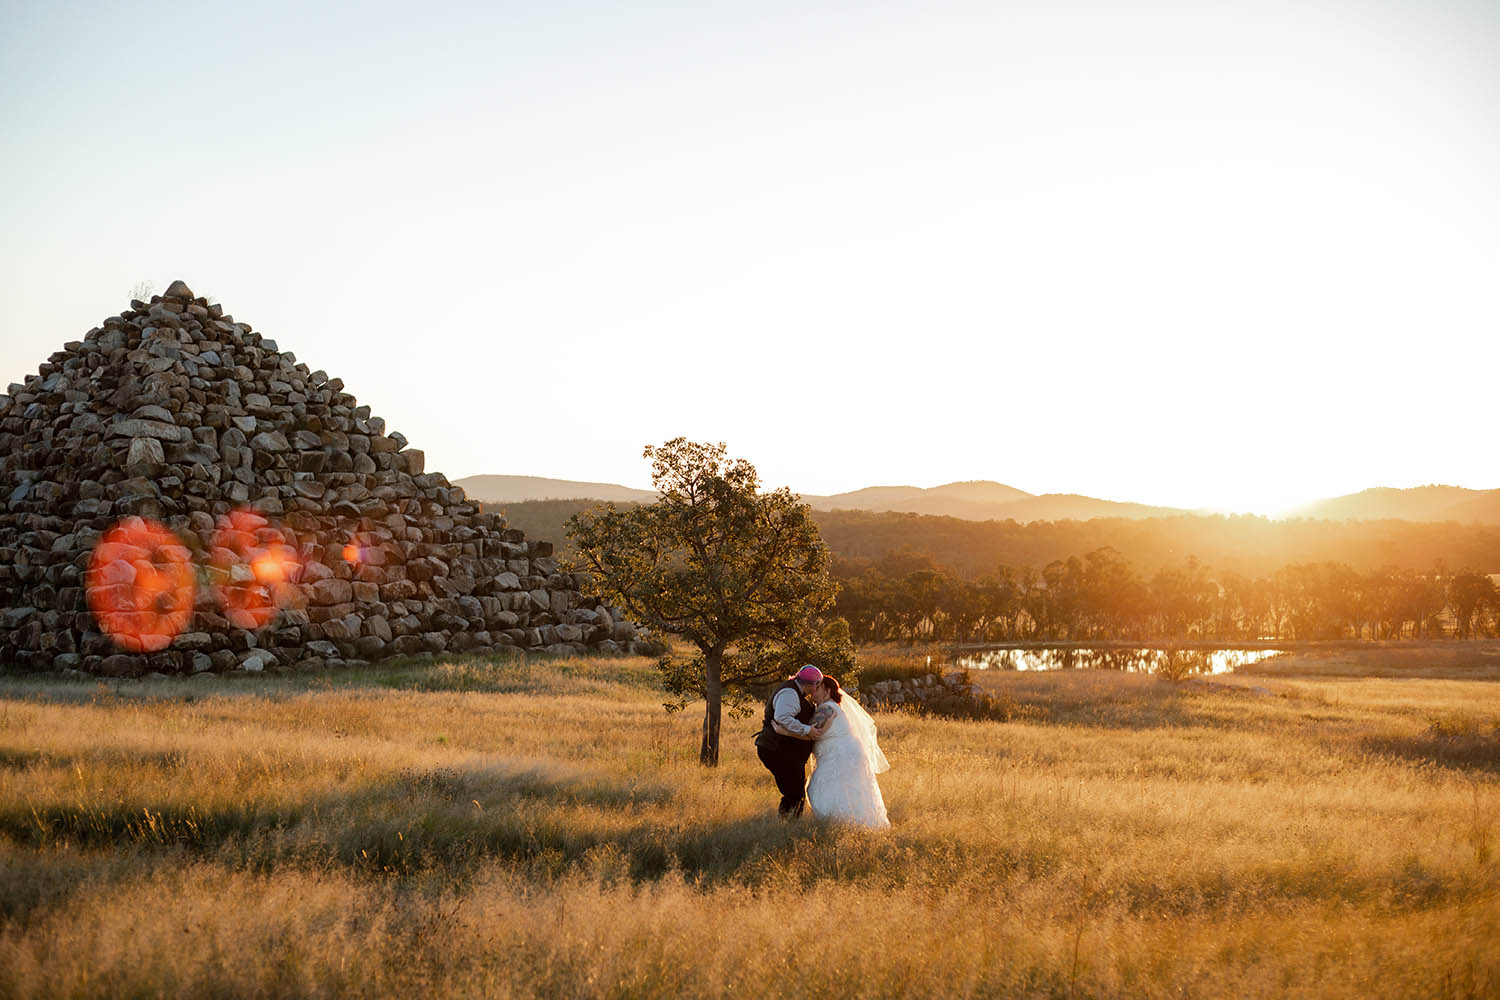 Wedding Photography - couple in front of rock pyramid